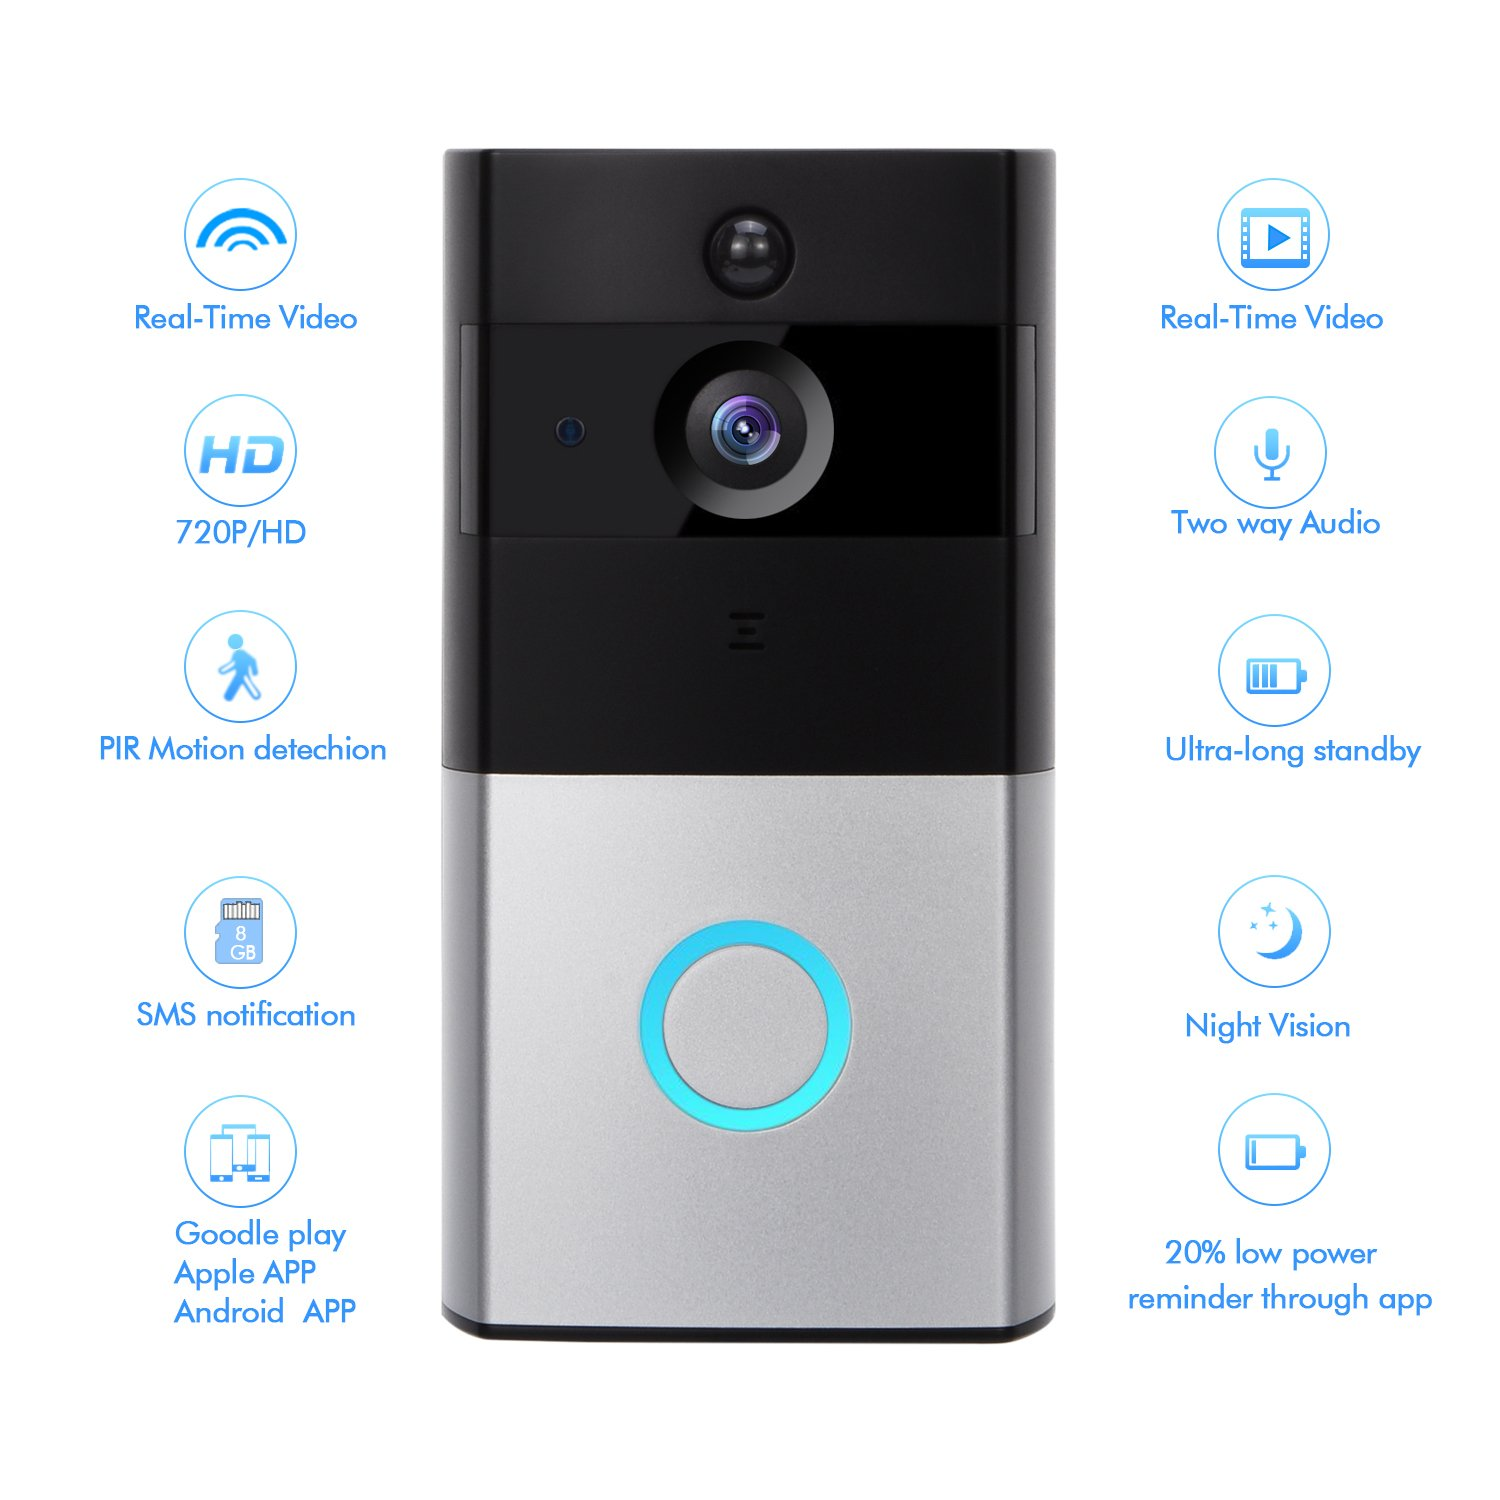 WIFI Video Doorbell, Wireless Smart Doorbell 720P Security Camera with  Chime, Night Vision 166 Wide Angle, Two-Way Talk and Video, App for IOS &